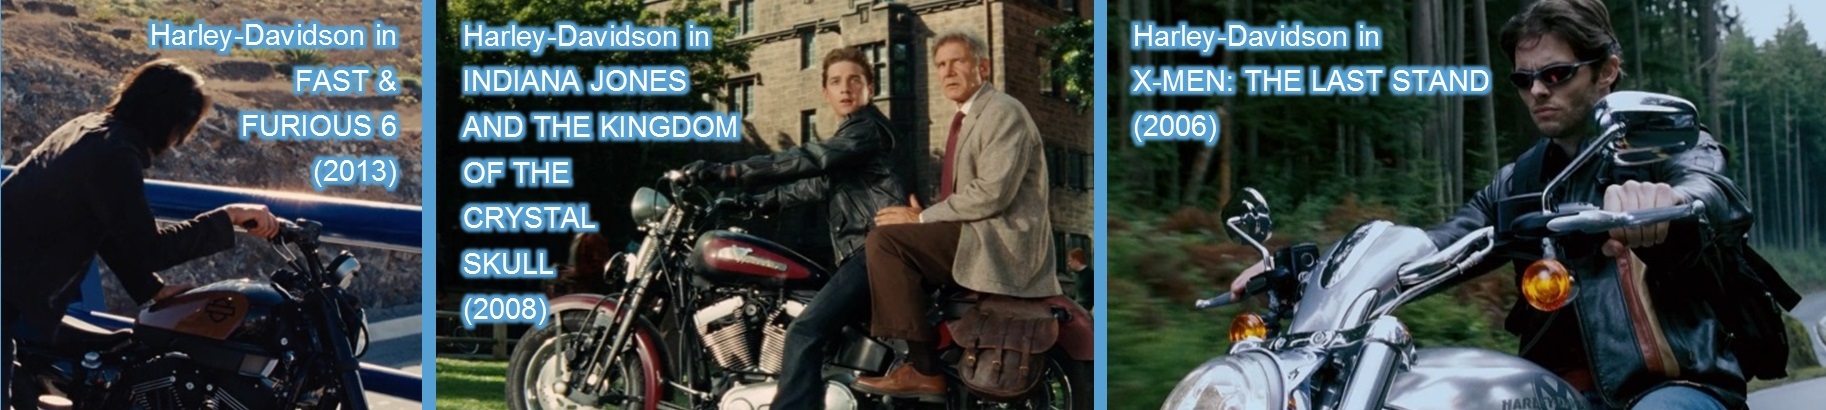 harley davidson in movies